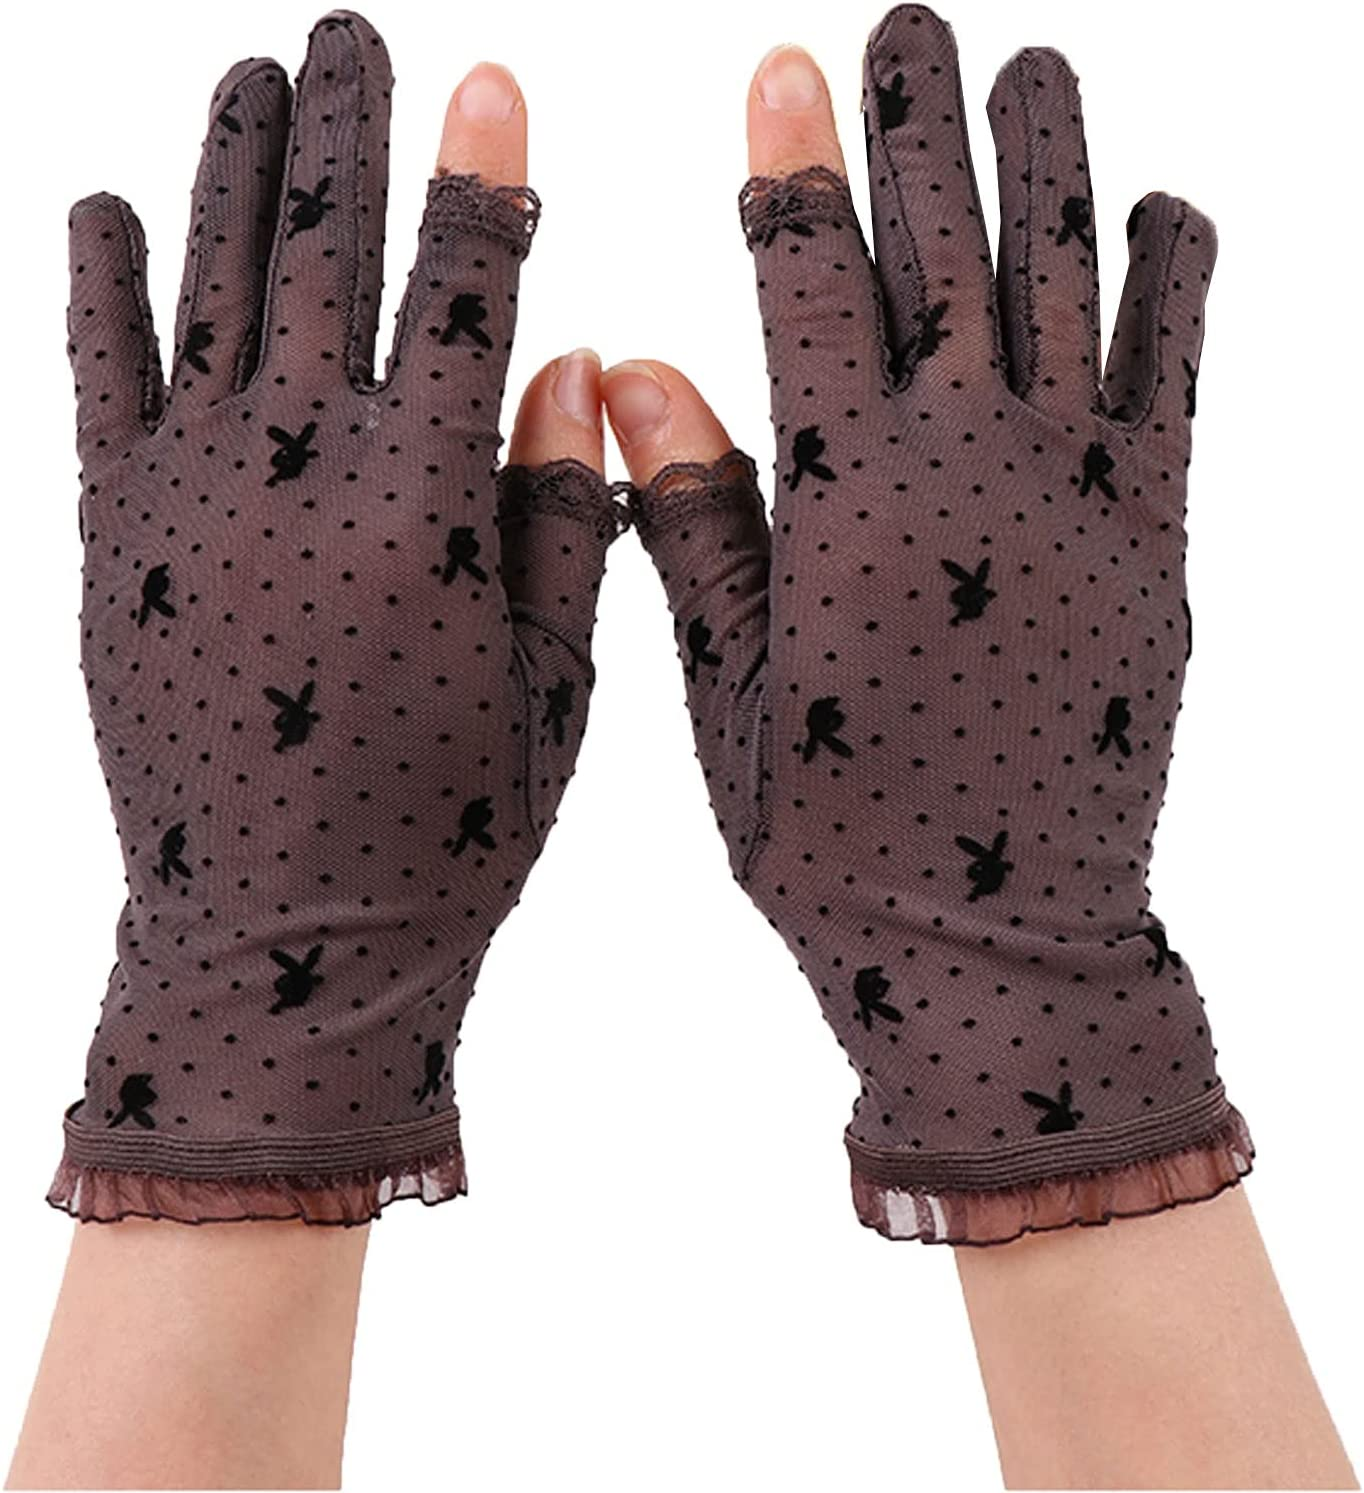 Thin Gloves Lace Gloves Female Sunscreen Fingerless Mesh Gloves Sexy and Elegant Warm Gloves (Color : Brown)